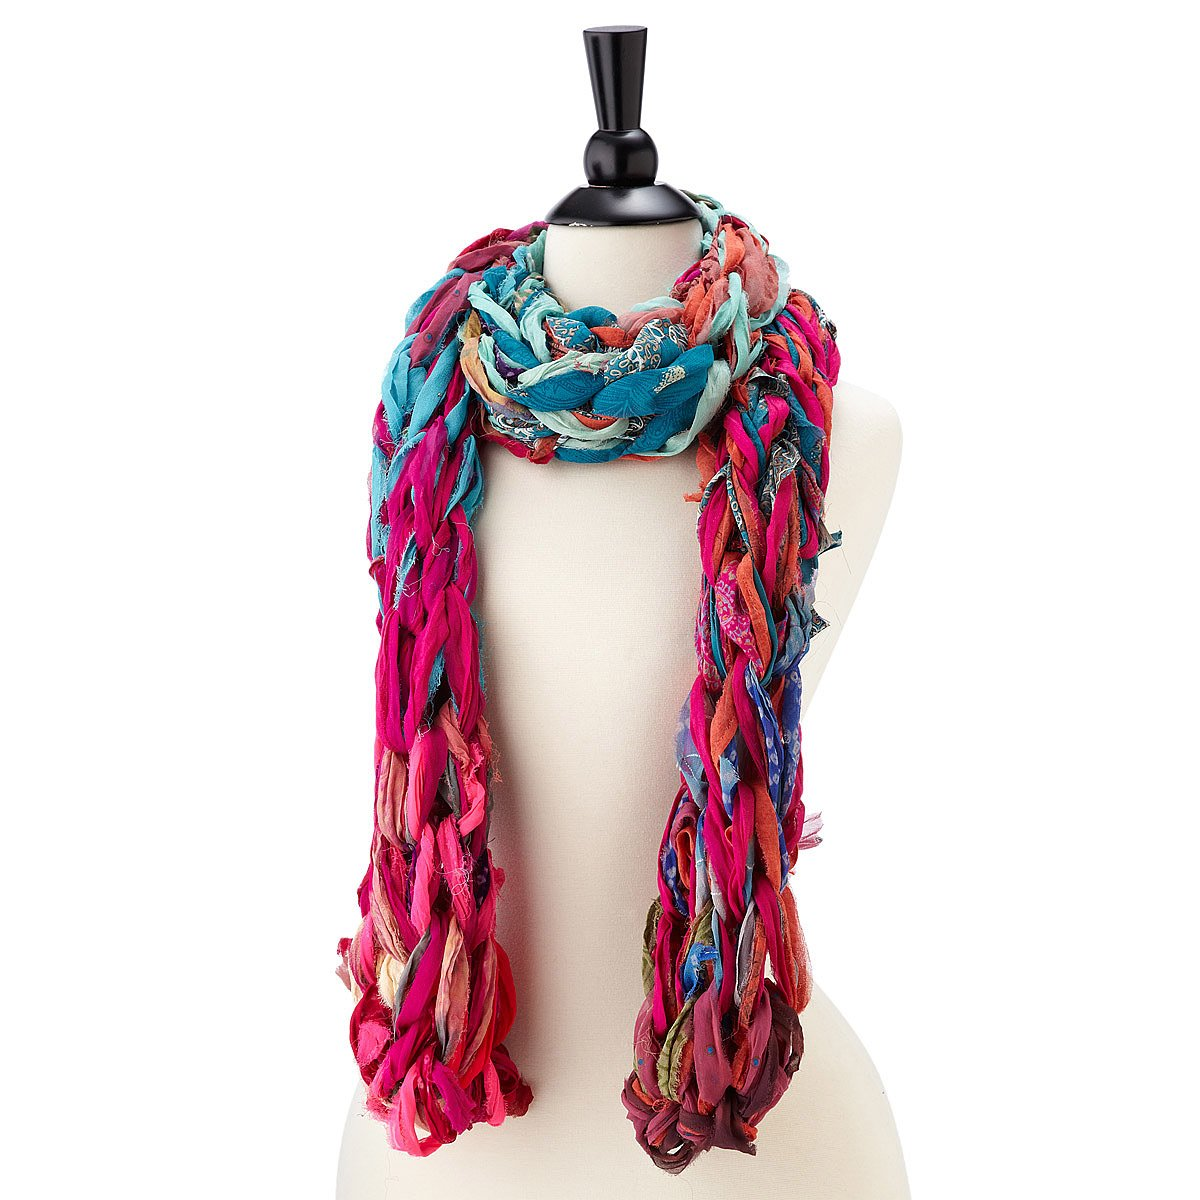 DIY Arm Knit Scarf Kit | knit with arms | UncommonGoods